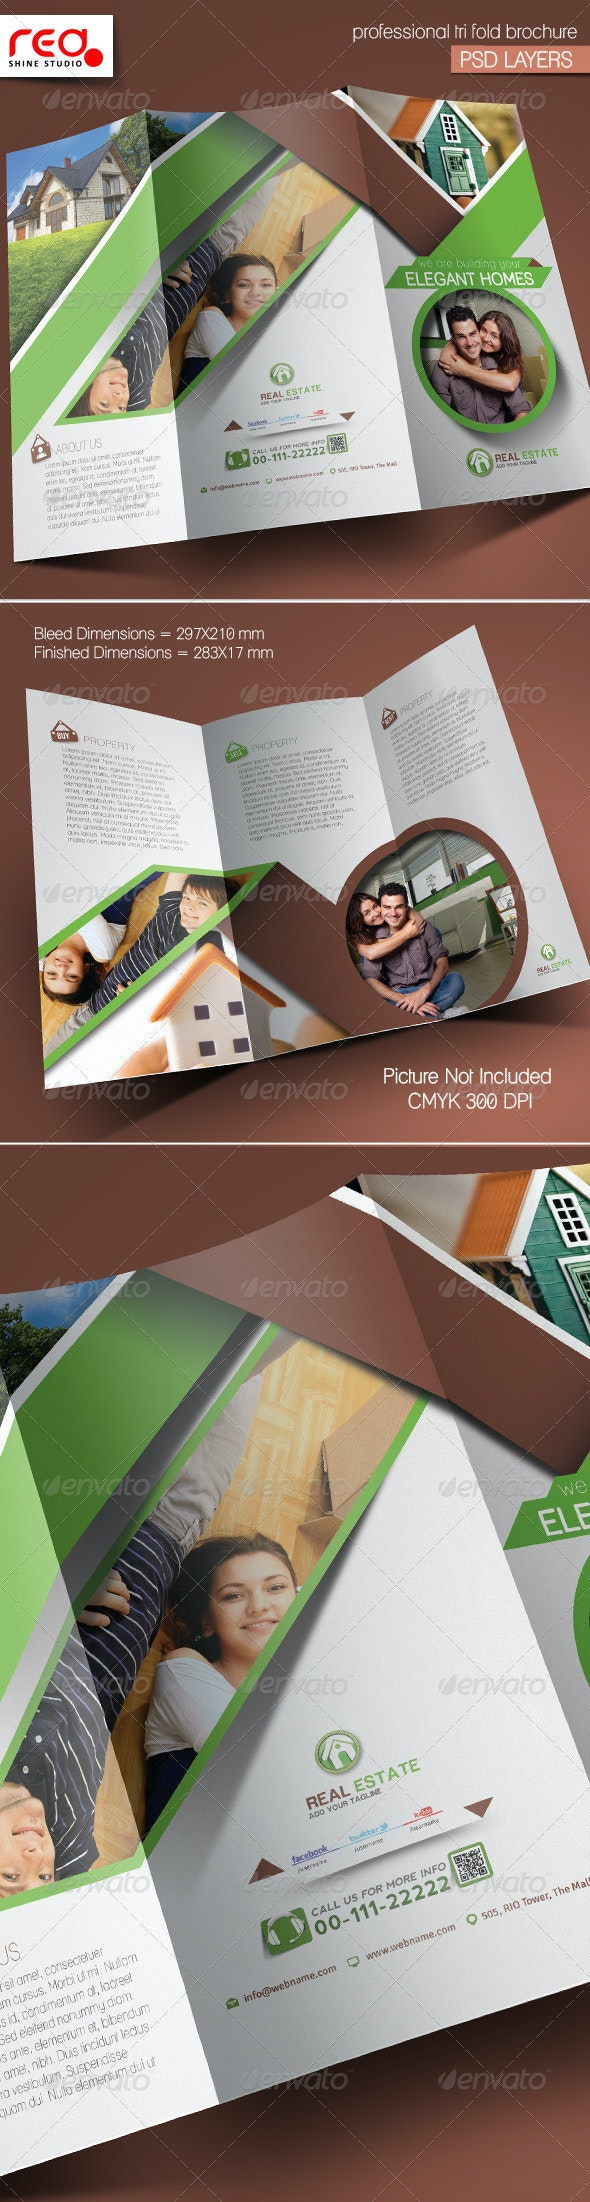 Real Estate Trifold Brochure Template - Corporate Brochures